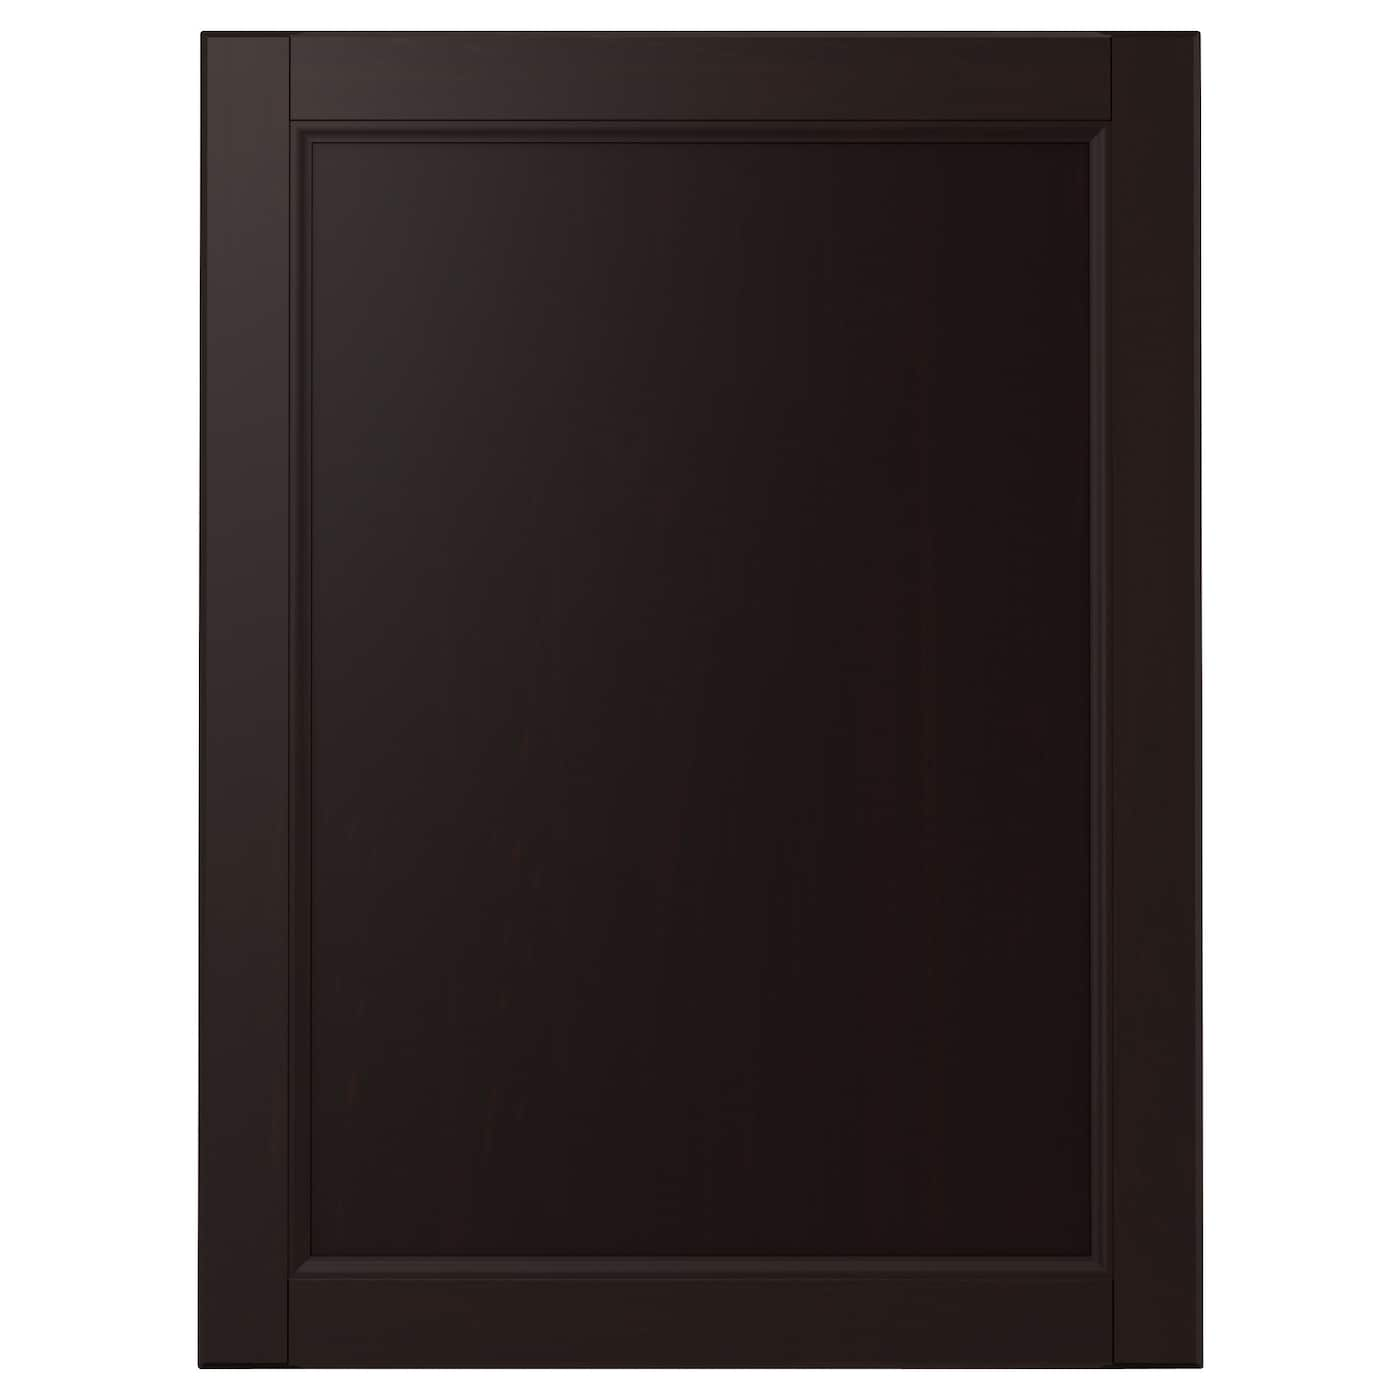 laxarby porte brun noir 60x80 cm ikea. Black Bedroom Furniture Sets. Home Design Ideas